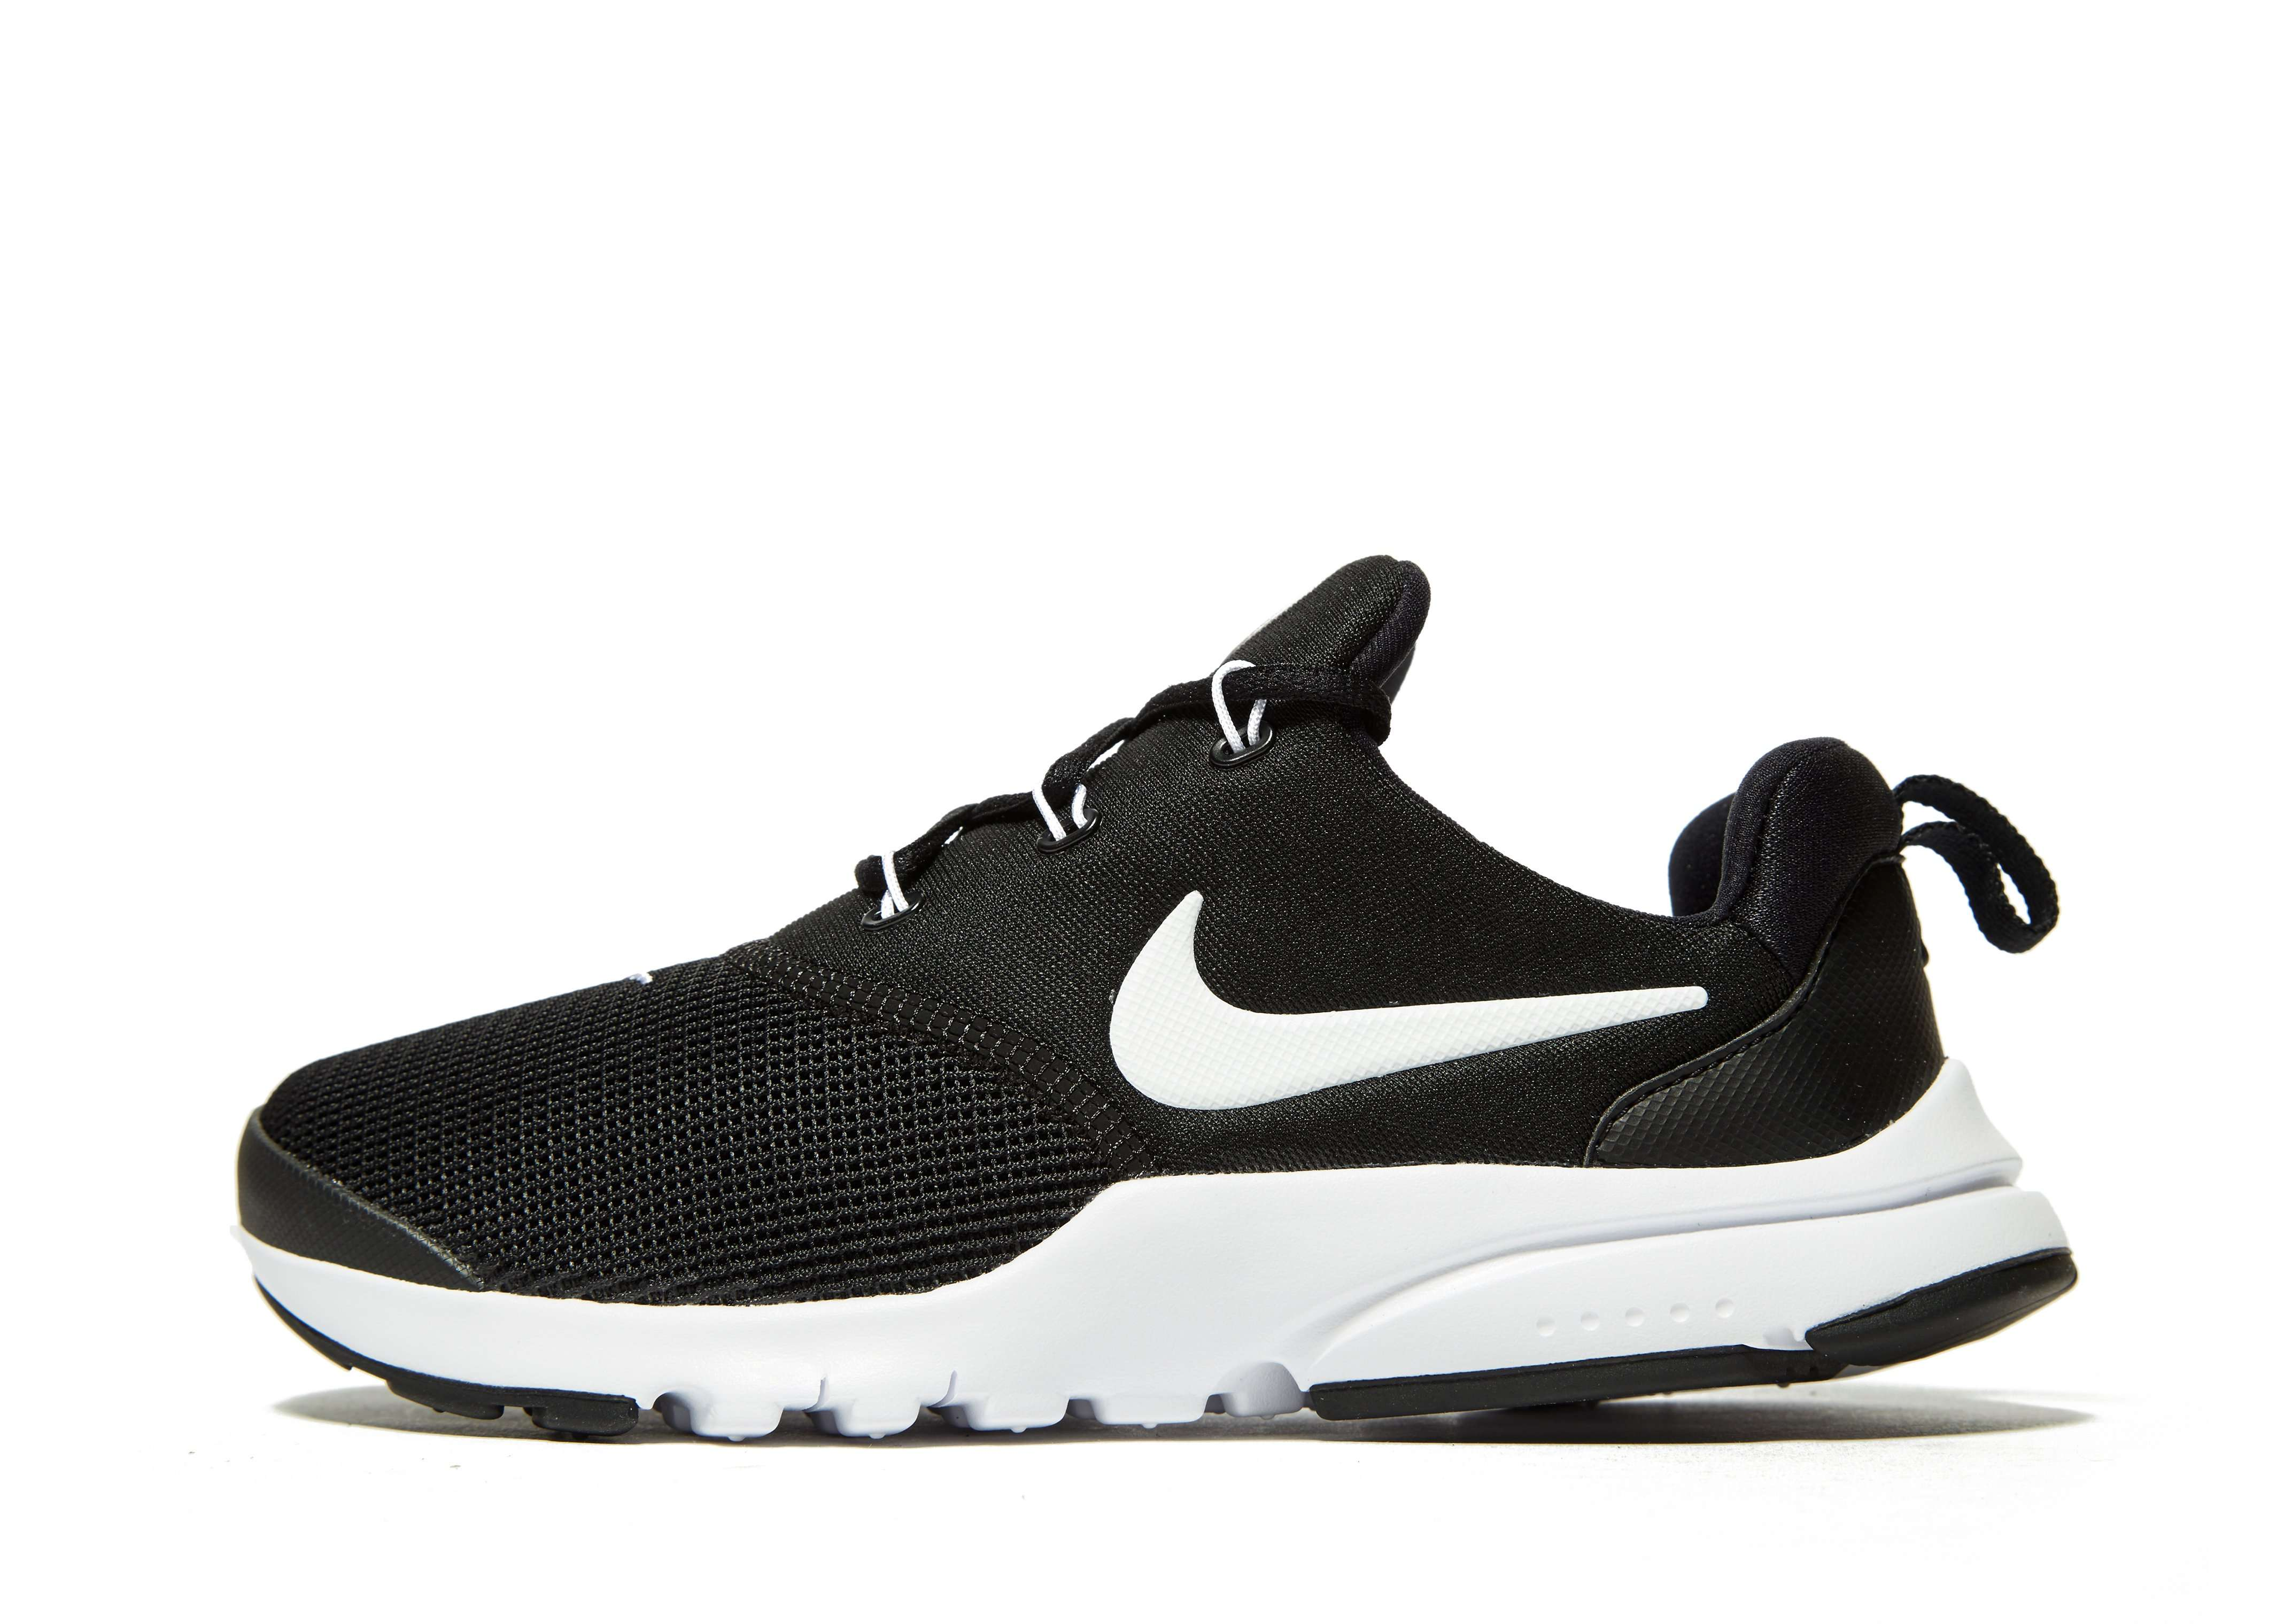 autumn shoes shades of various colors NIKE PRESTO FLY BLK/WHT | JD Sports